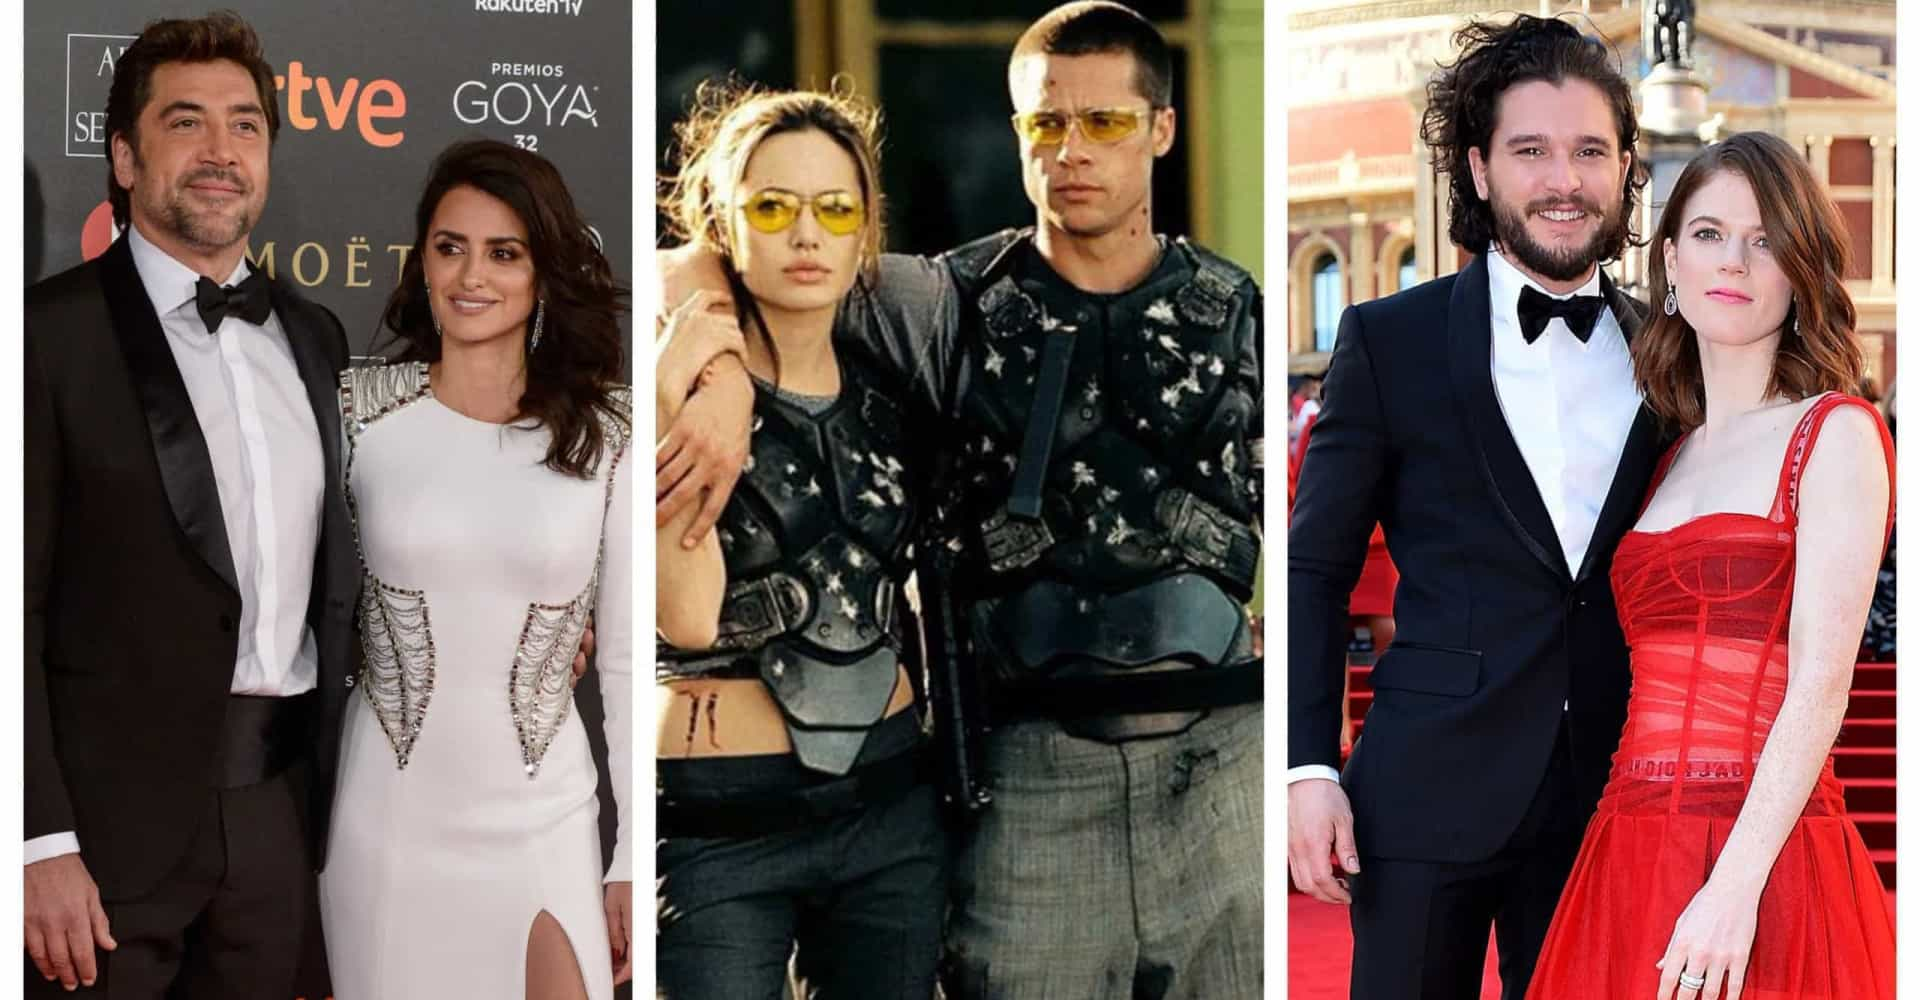 The celebrity couples who got together on set